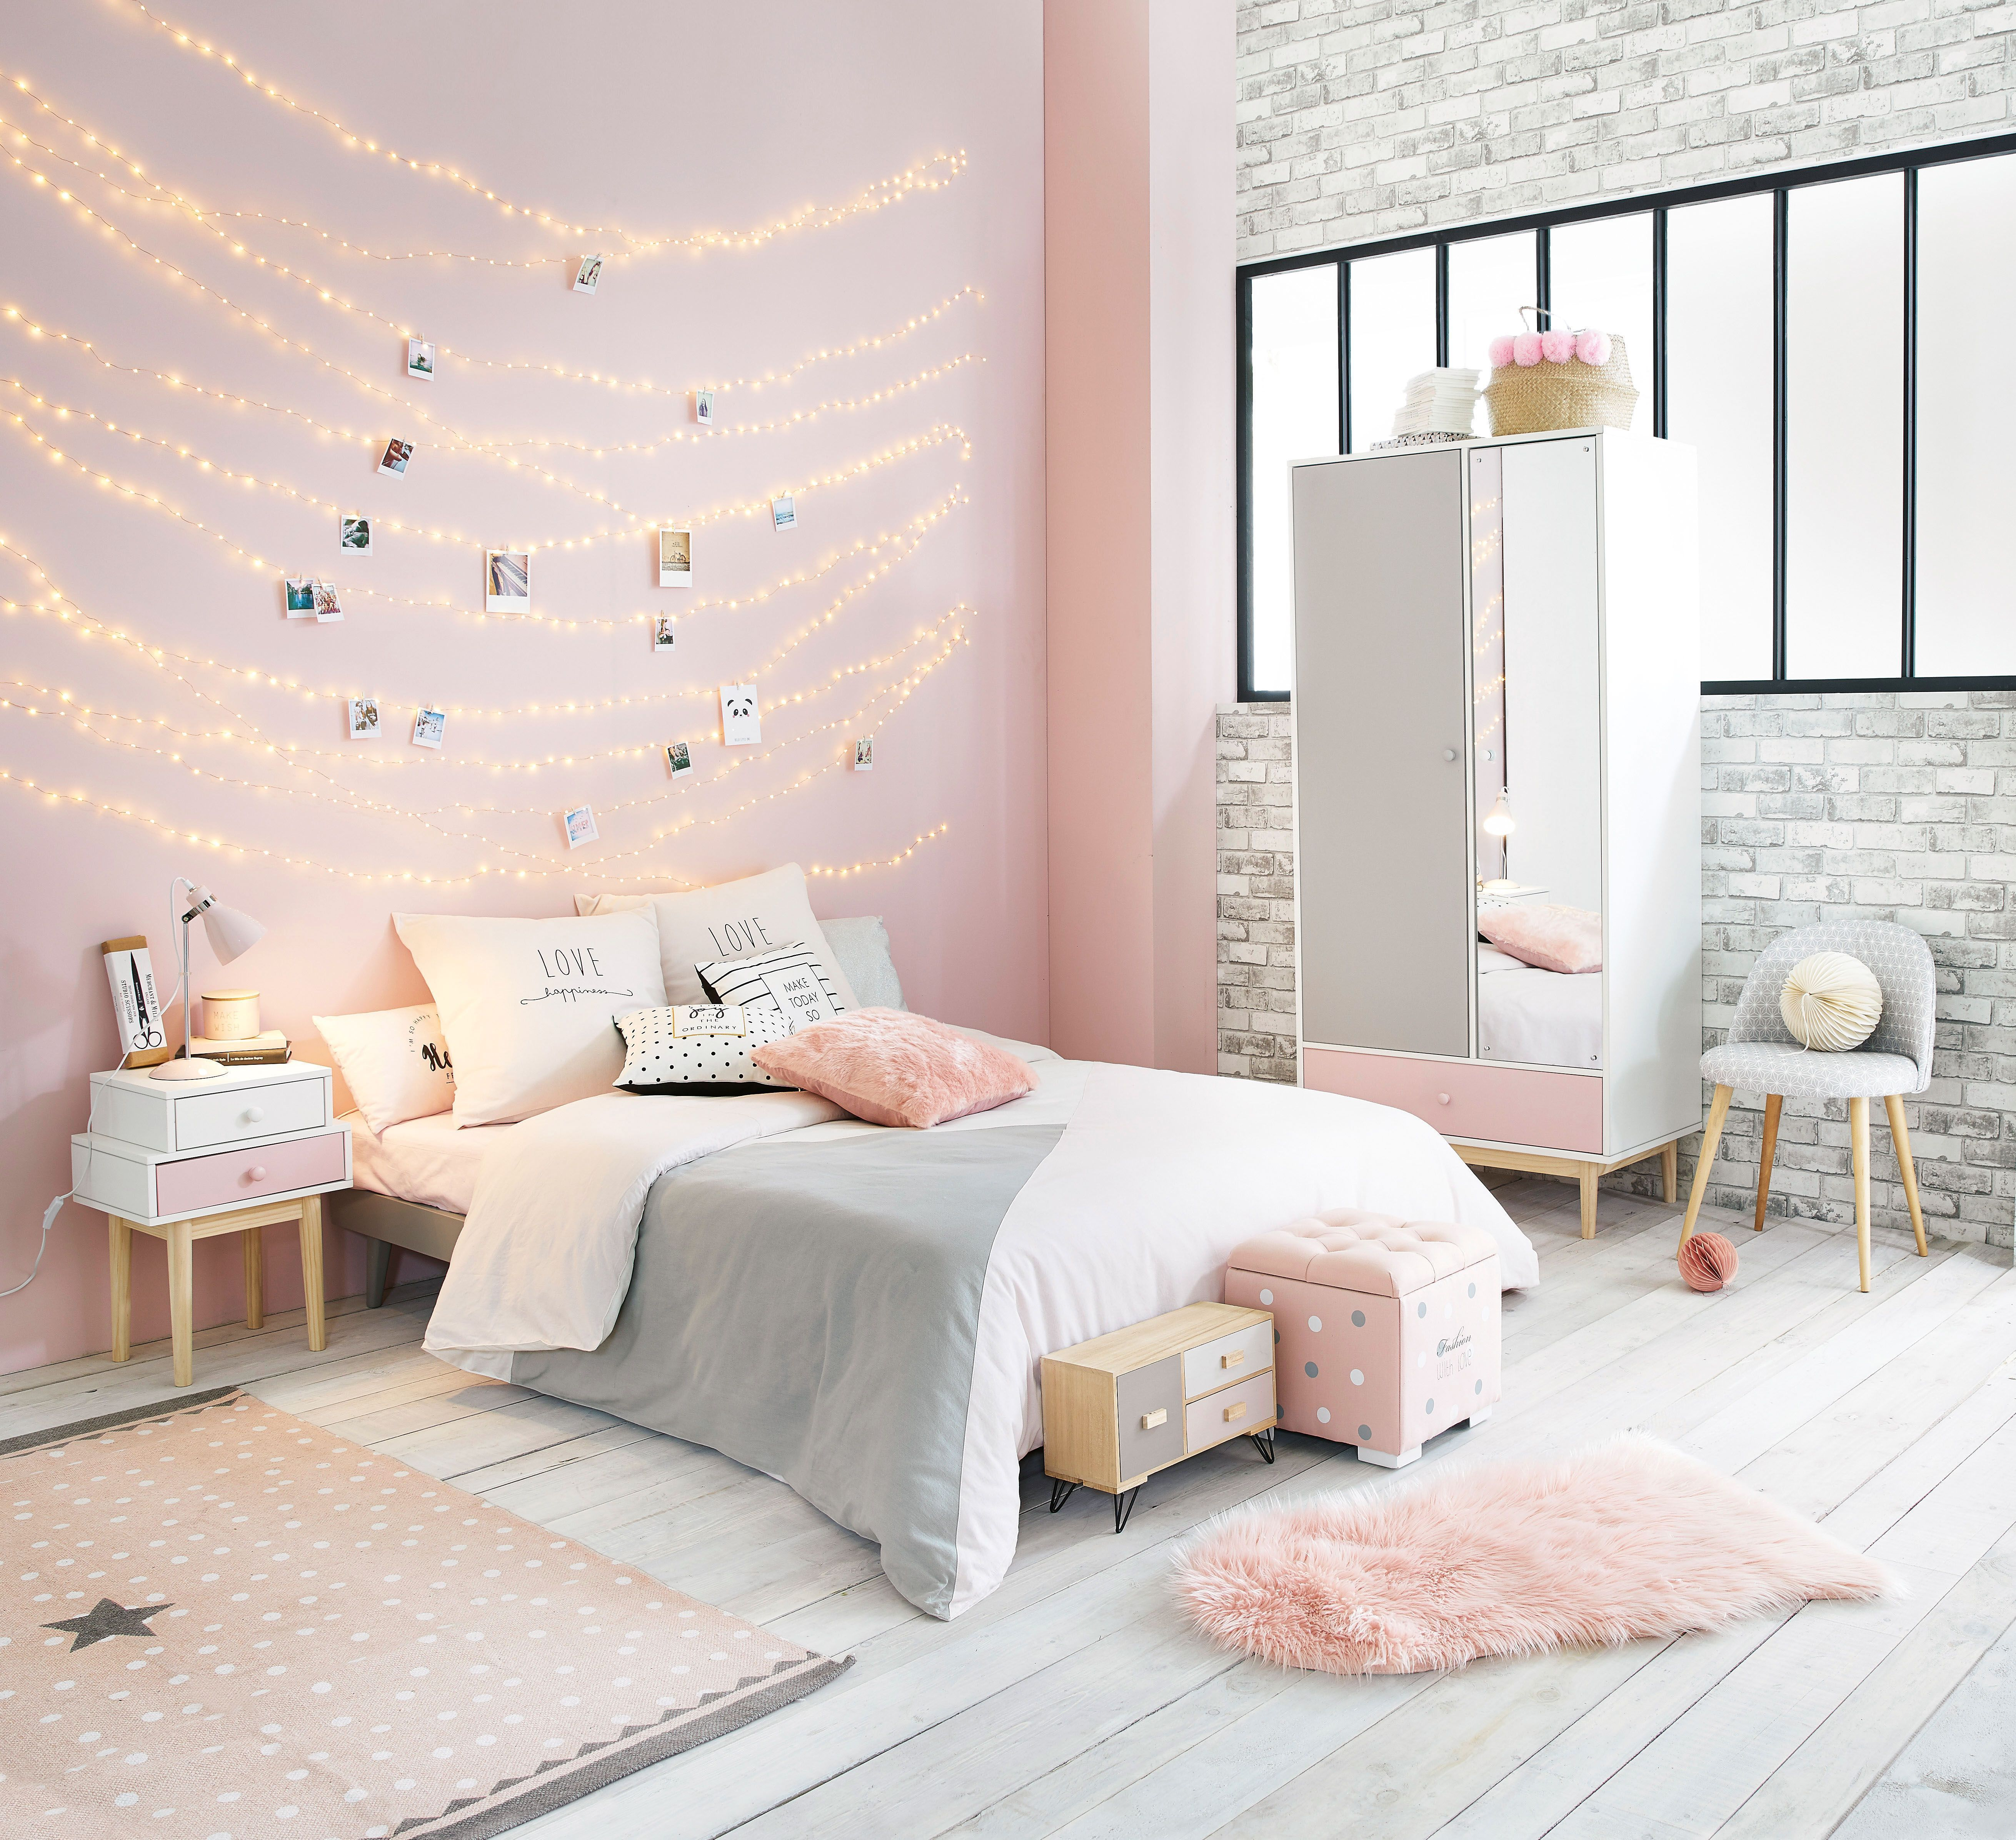 10 Fun And Beautiful Toddler Bedroom Ideas On A Budget